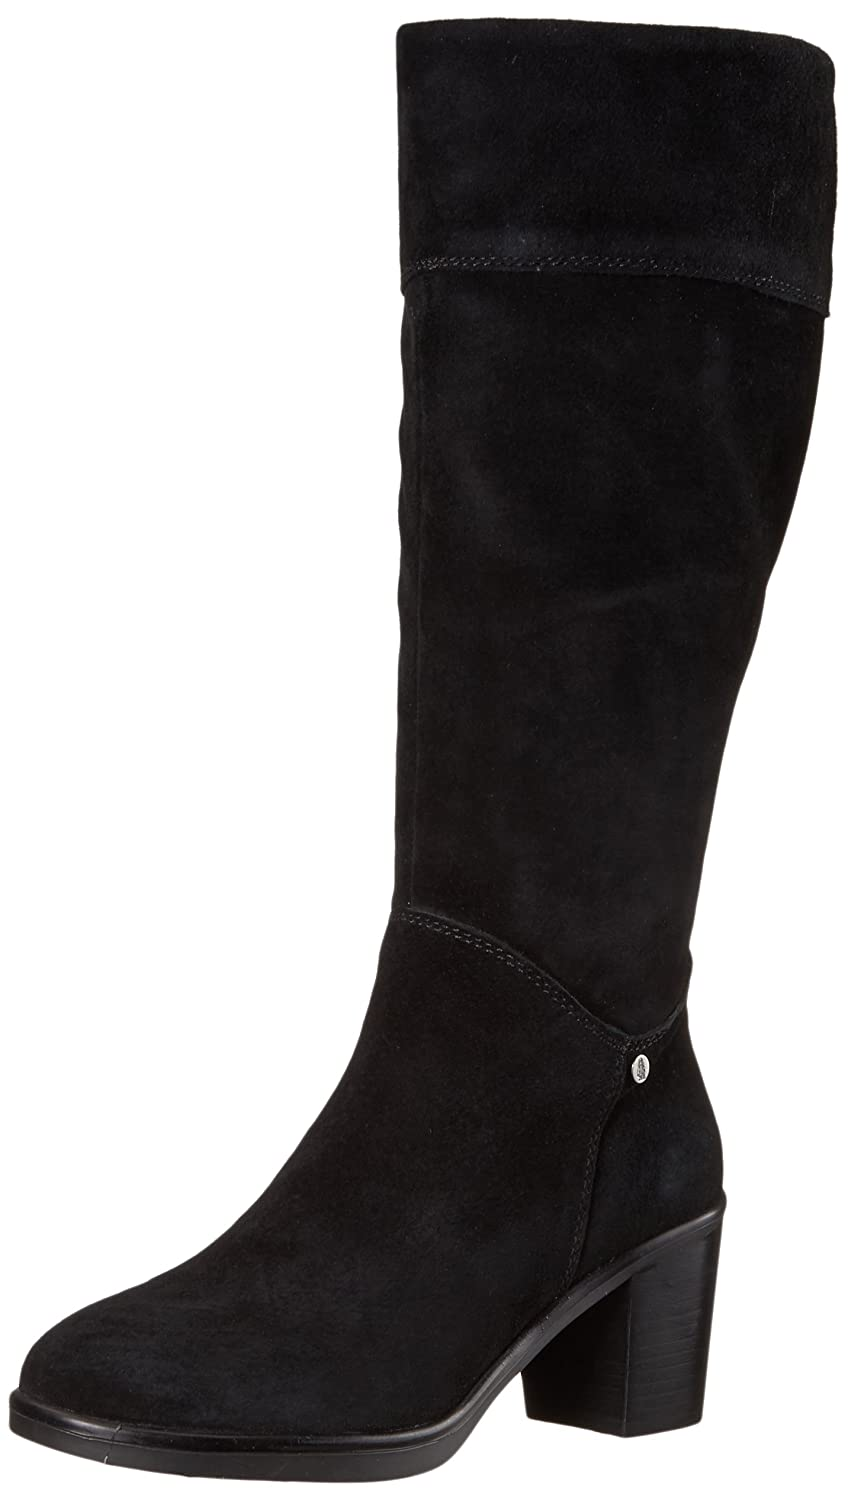 Hush Puppies Women's Saun Olivya Boot B01MZFB335 7 B(M) US|Black